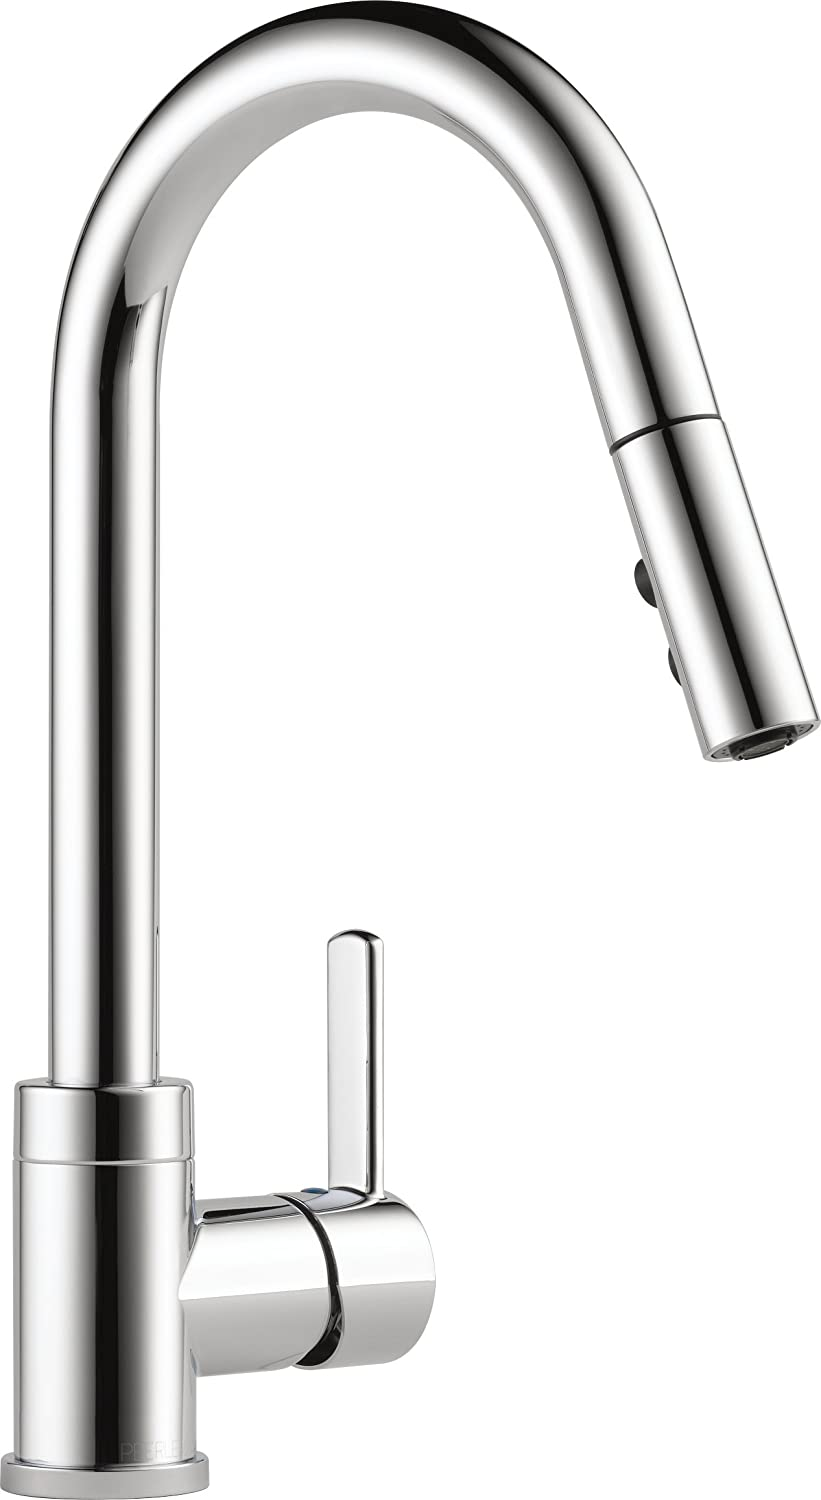 Peerless Precept Single-Handle Kitchen Sink Faucet with Pull Down Sprayer, Chrome P188152LF